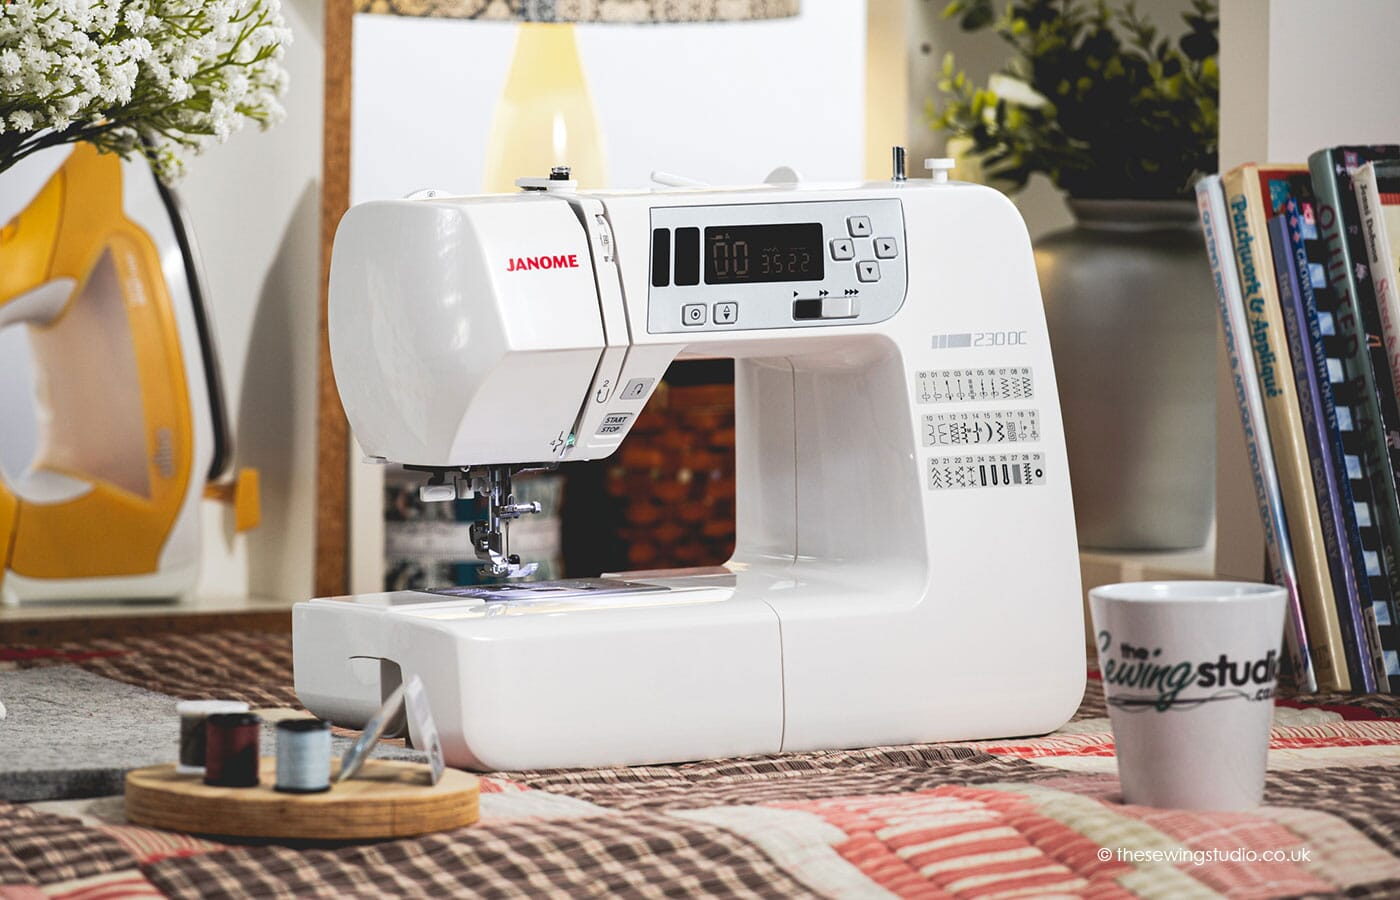 Janome 230DC Sewing Machine in a Sewing Room